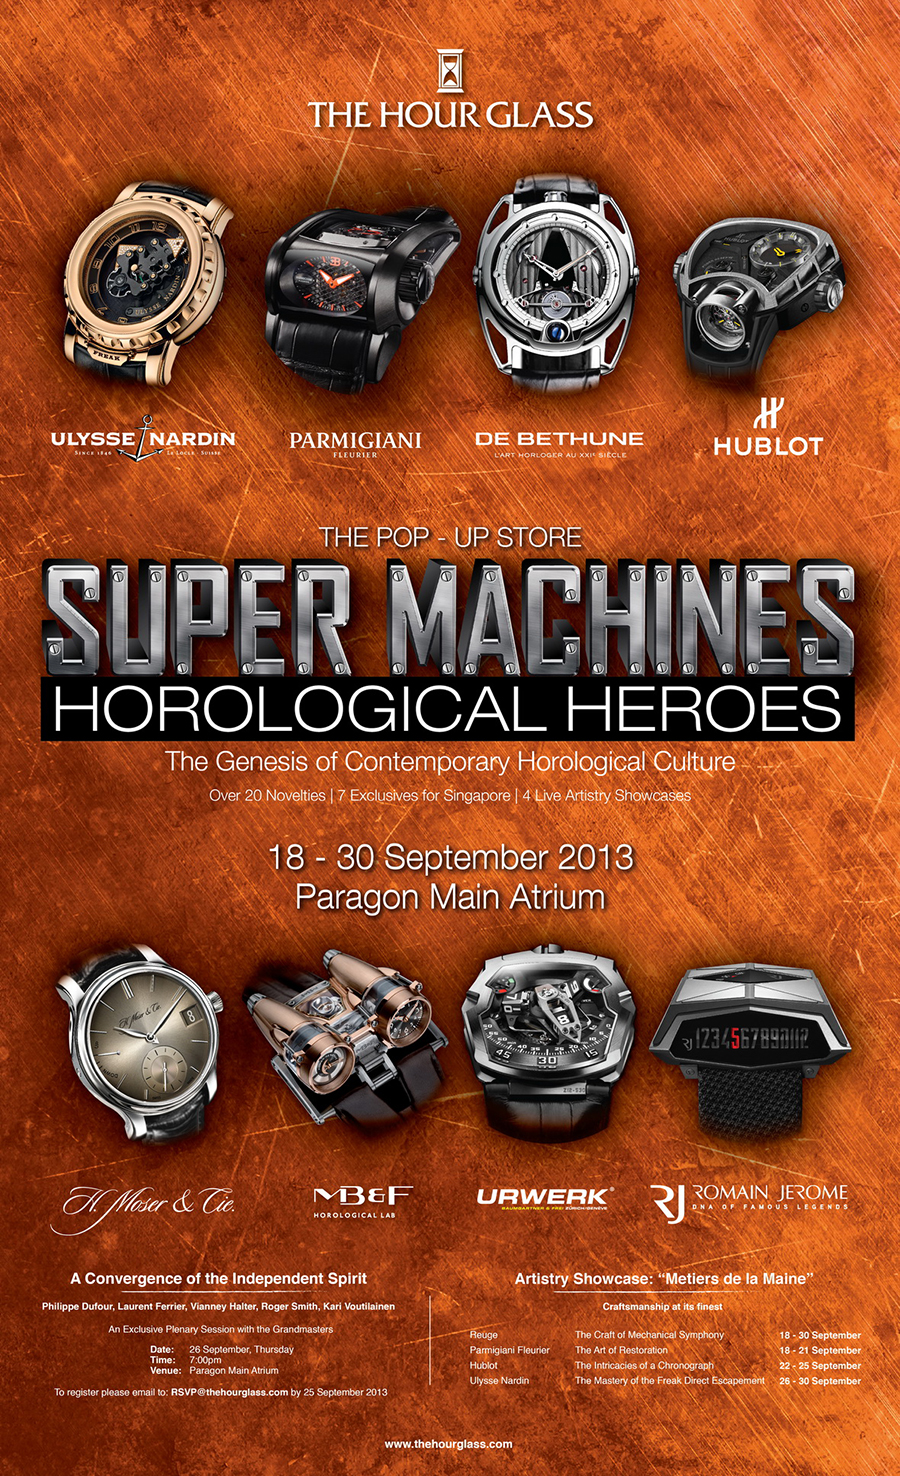 Supermachines-and-Horological-Heroes-Pop-up-Store